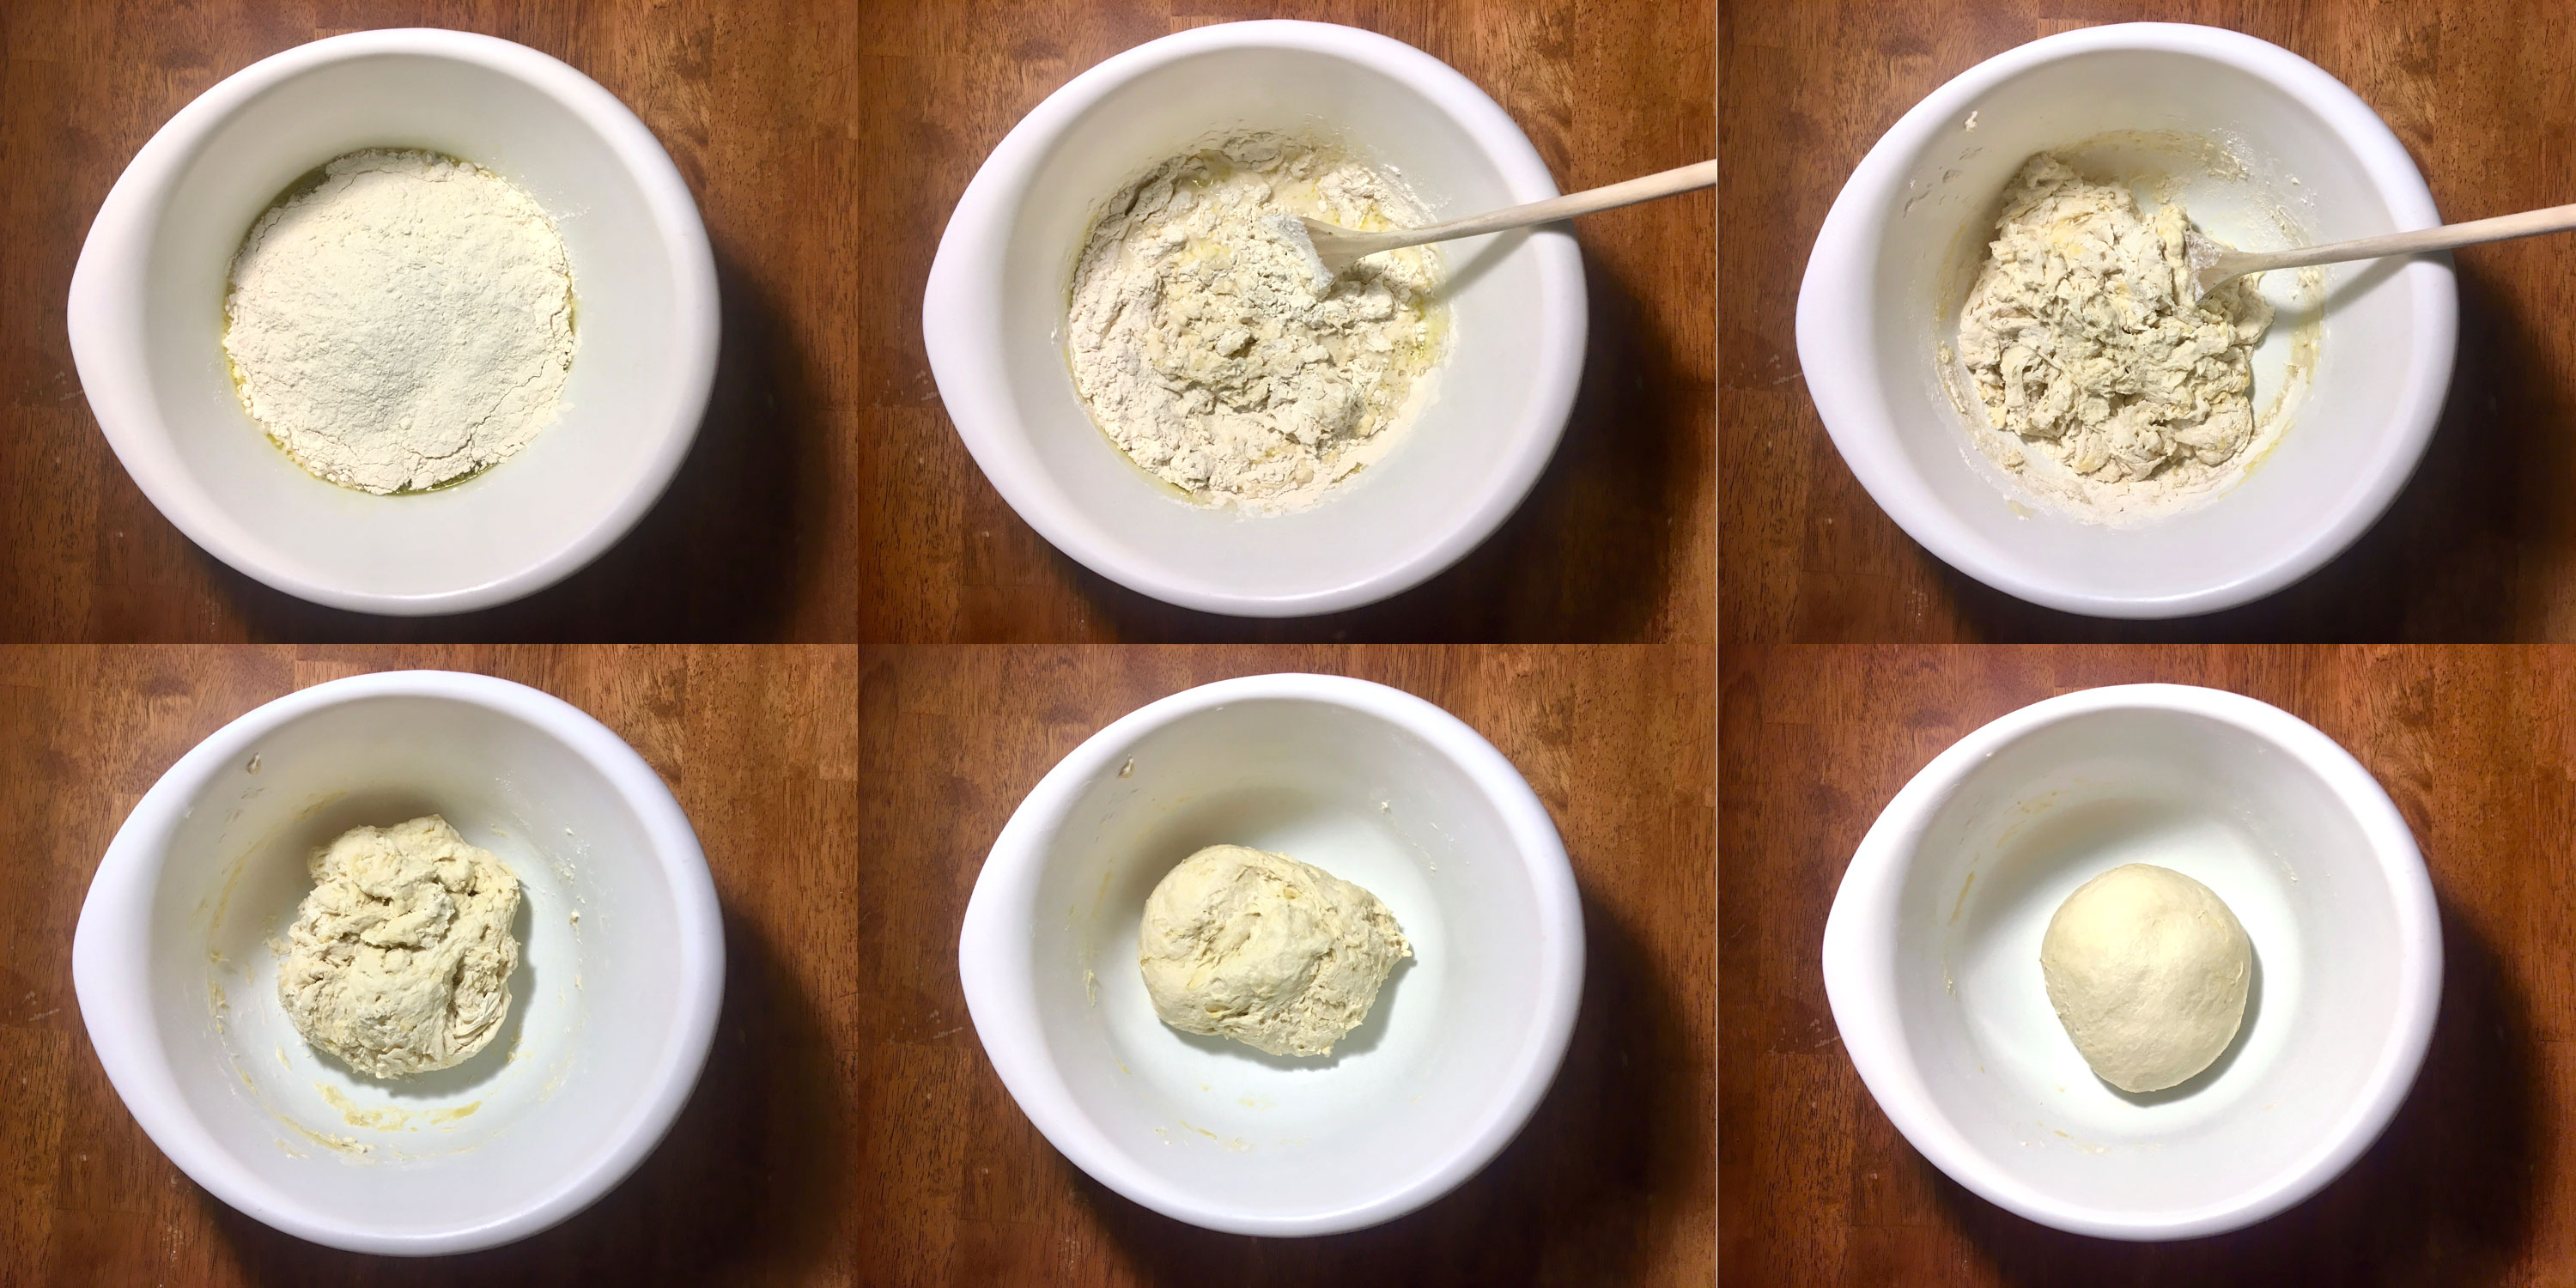 Mixing wet and dry ingredients in pizza dough